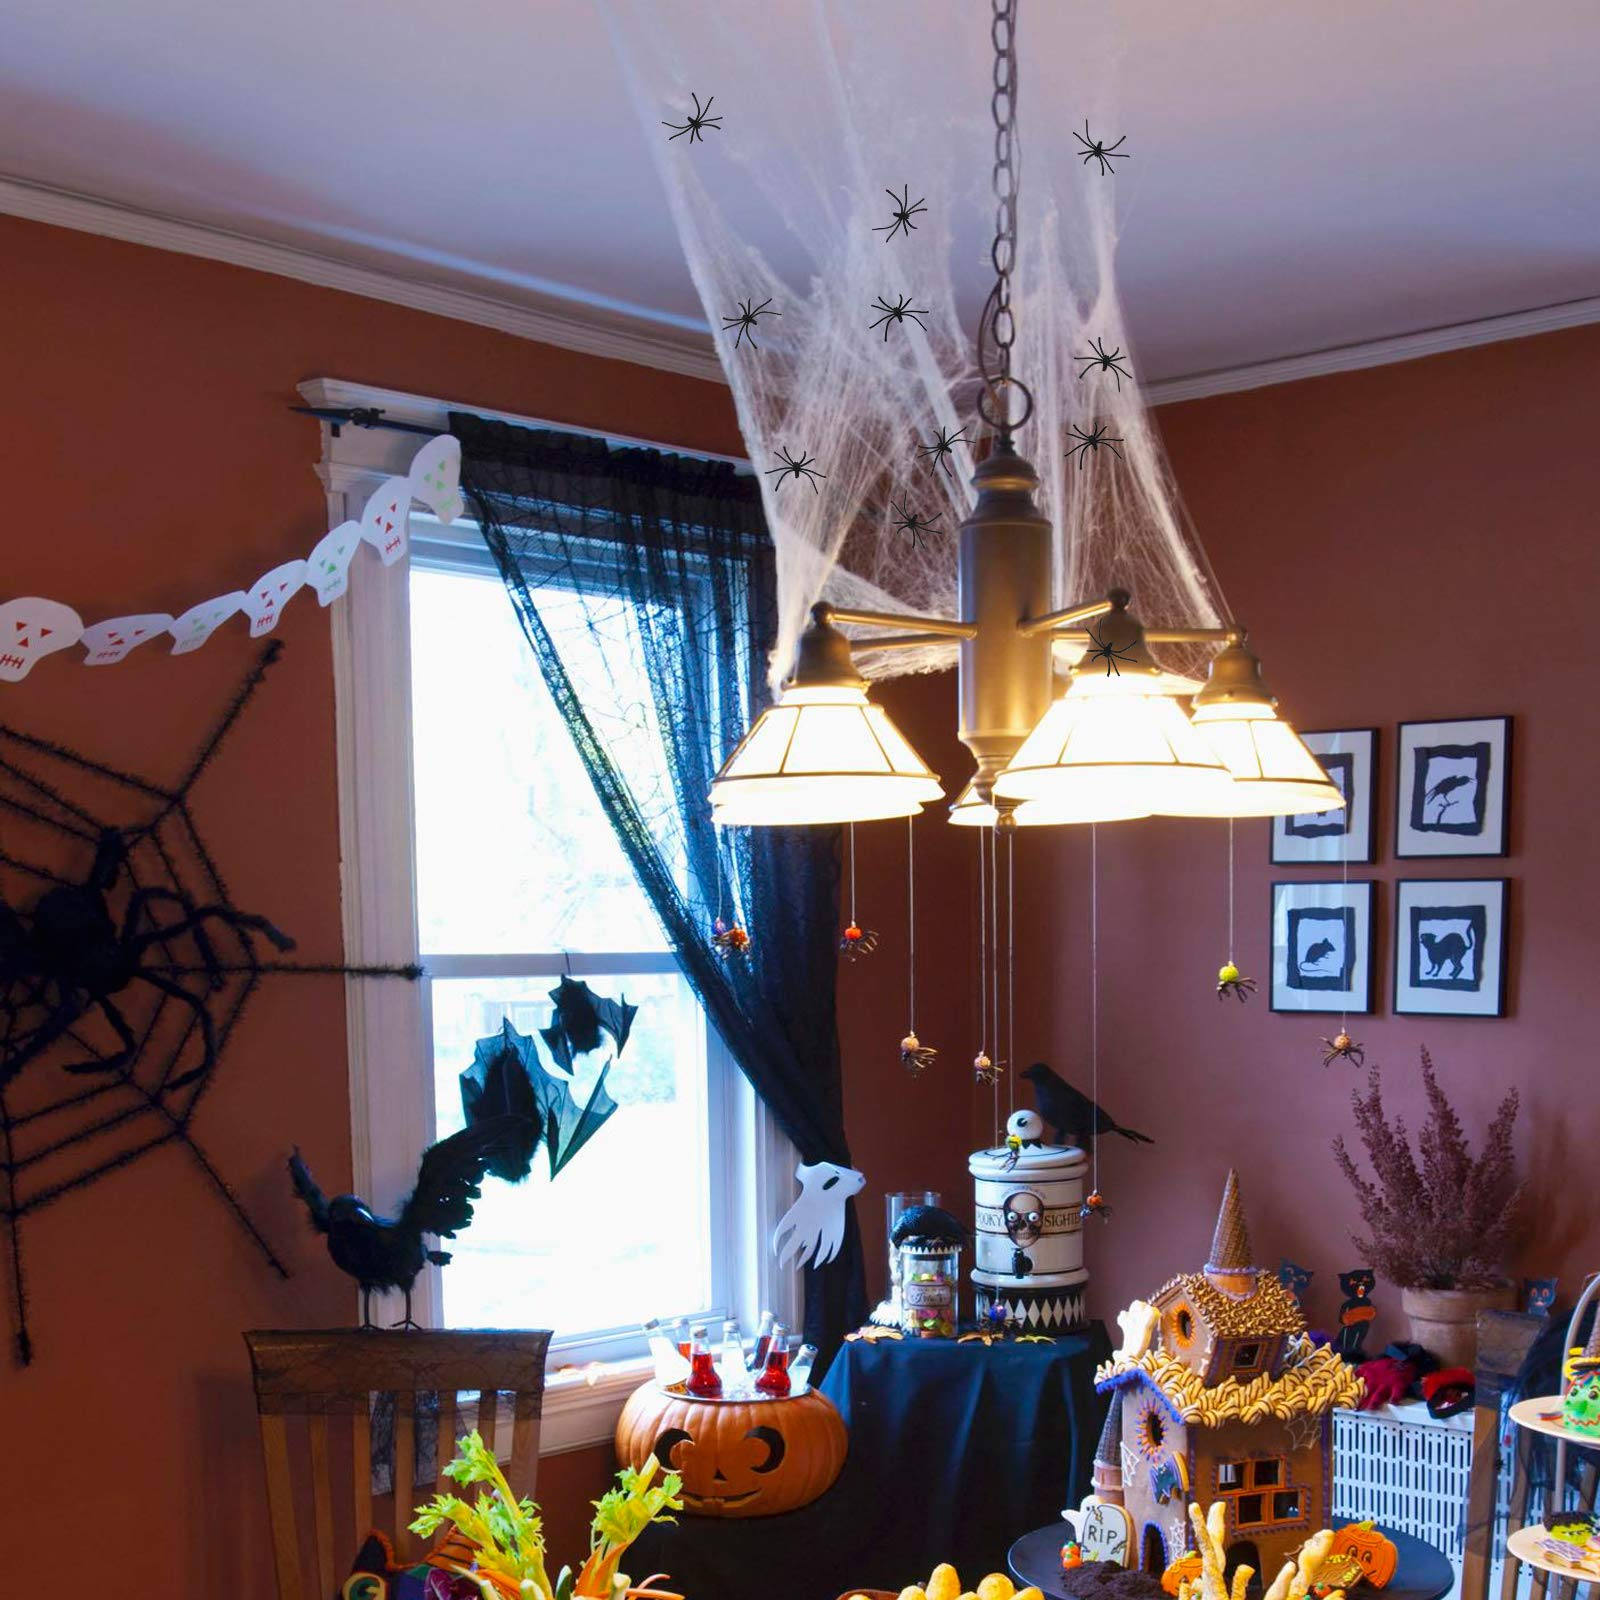 KATOOM 2pcs Halloween Spiderweb Cobweb Fireplace Decoration Black & White Spider web Lace Tablecloth with 30pcs Fake Spiders for Horror Themed Party Haunted House Window